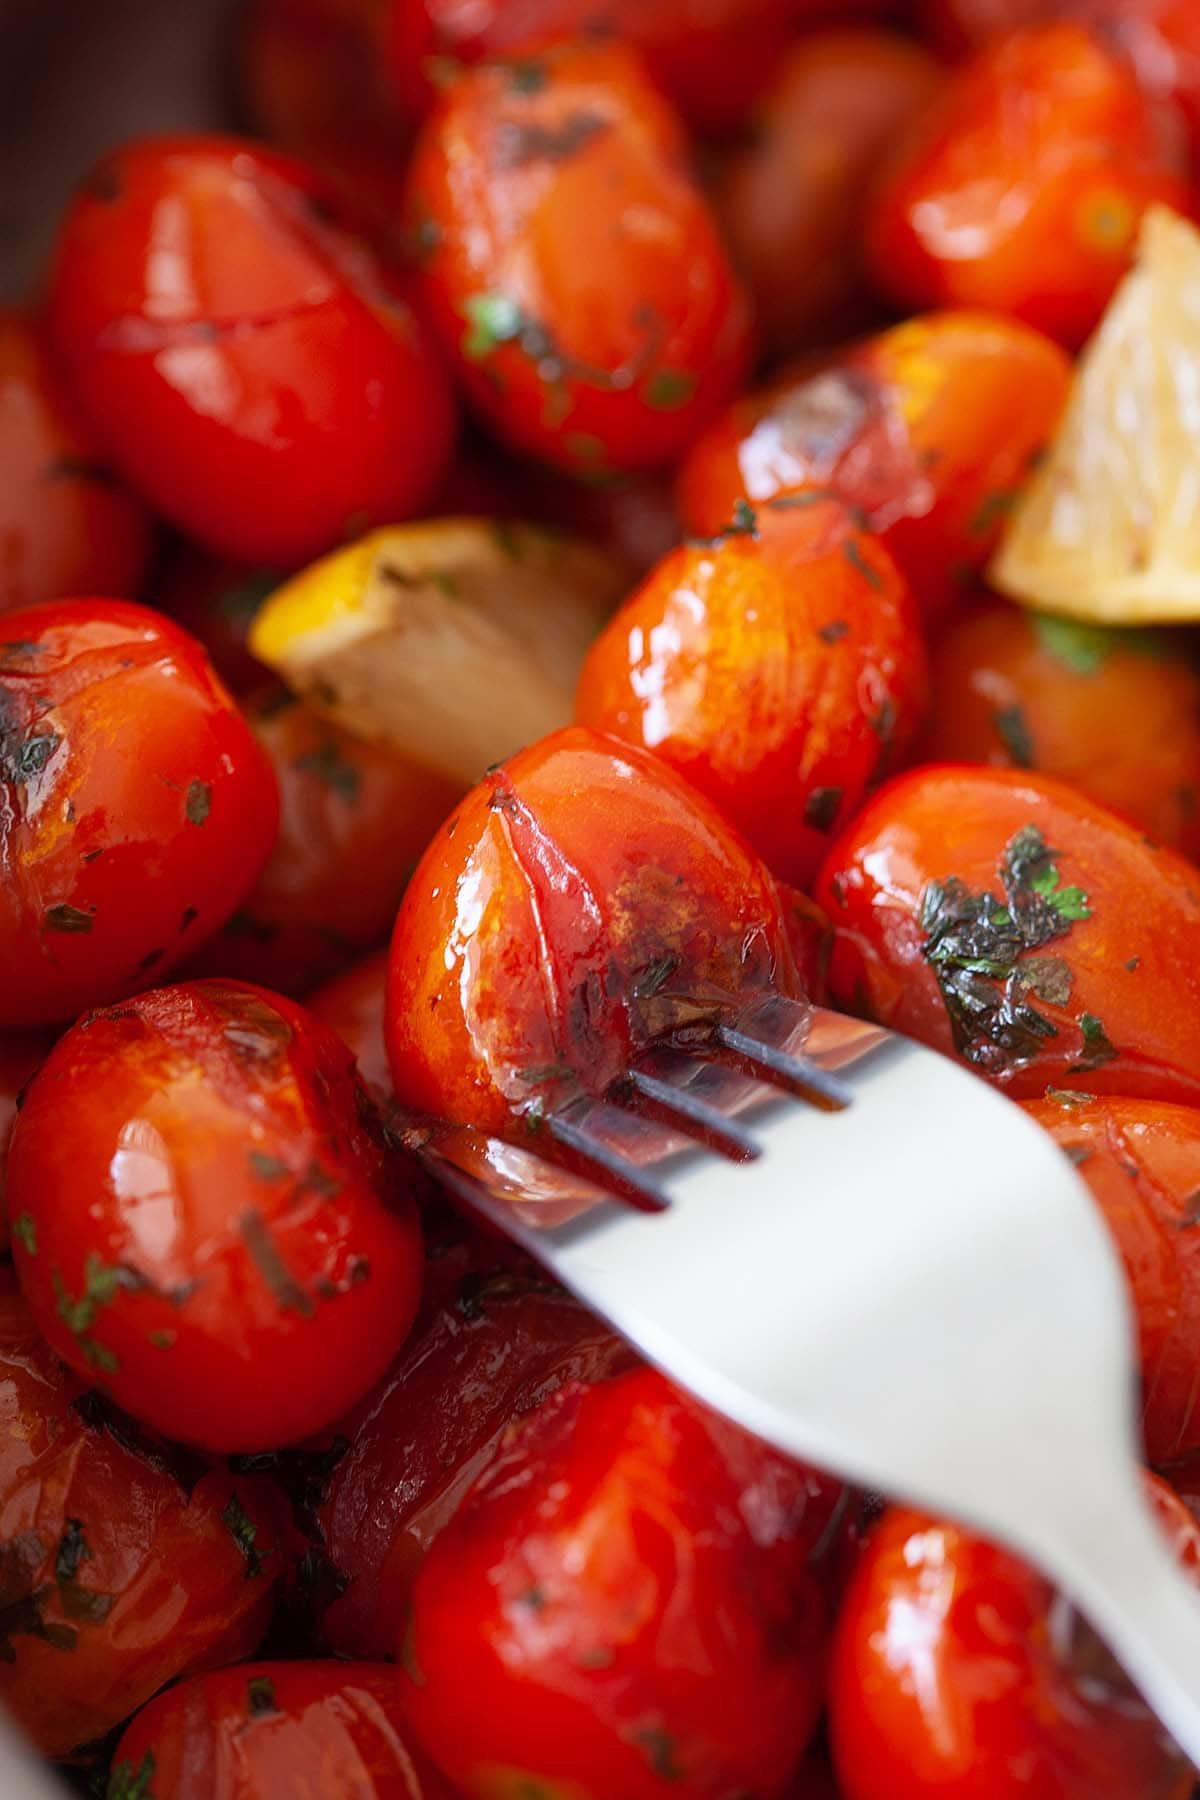 Grilled tomatoes in a skillet.